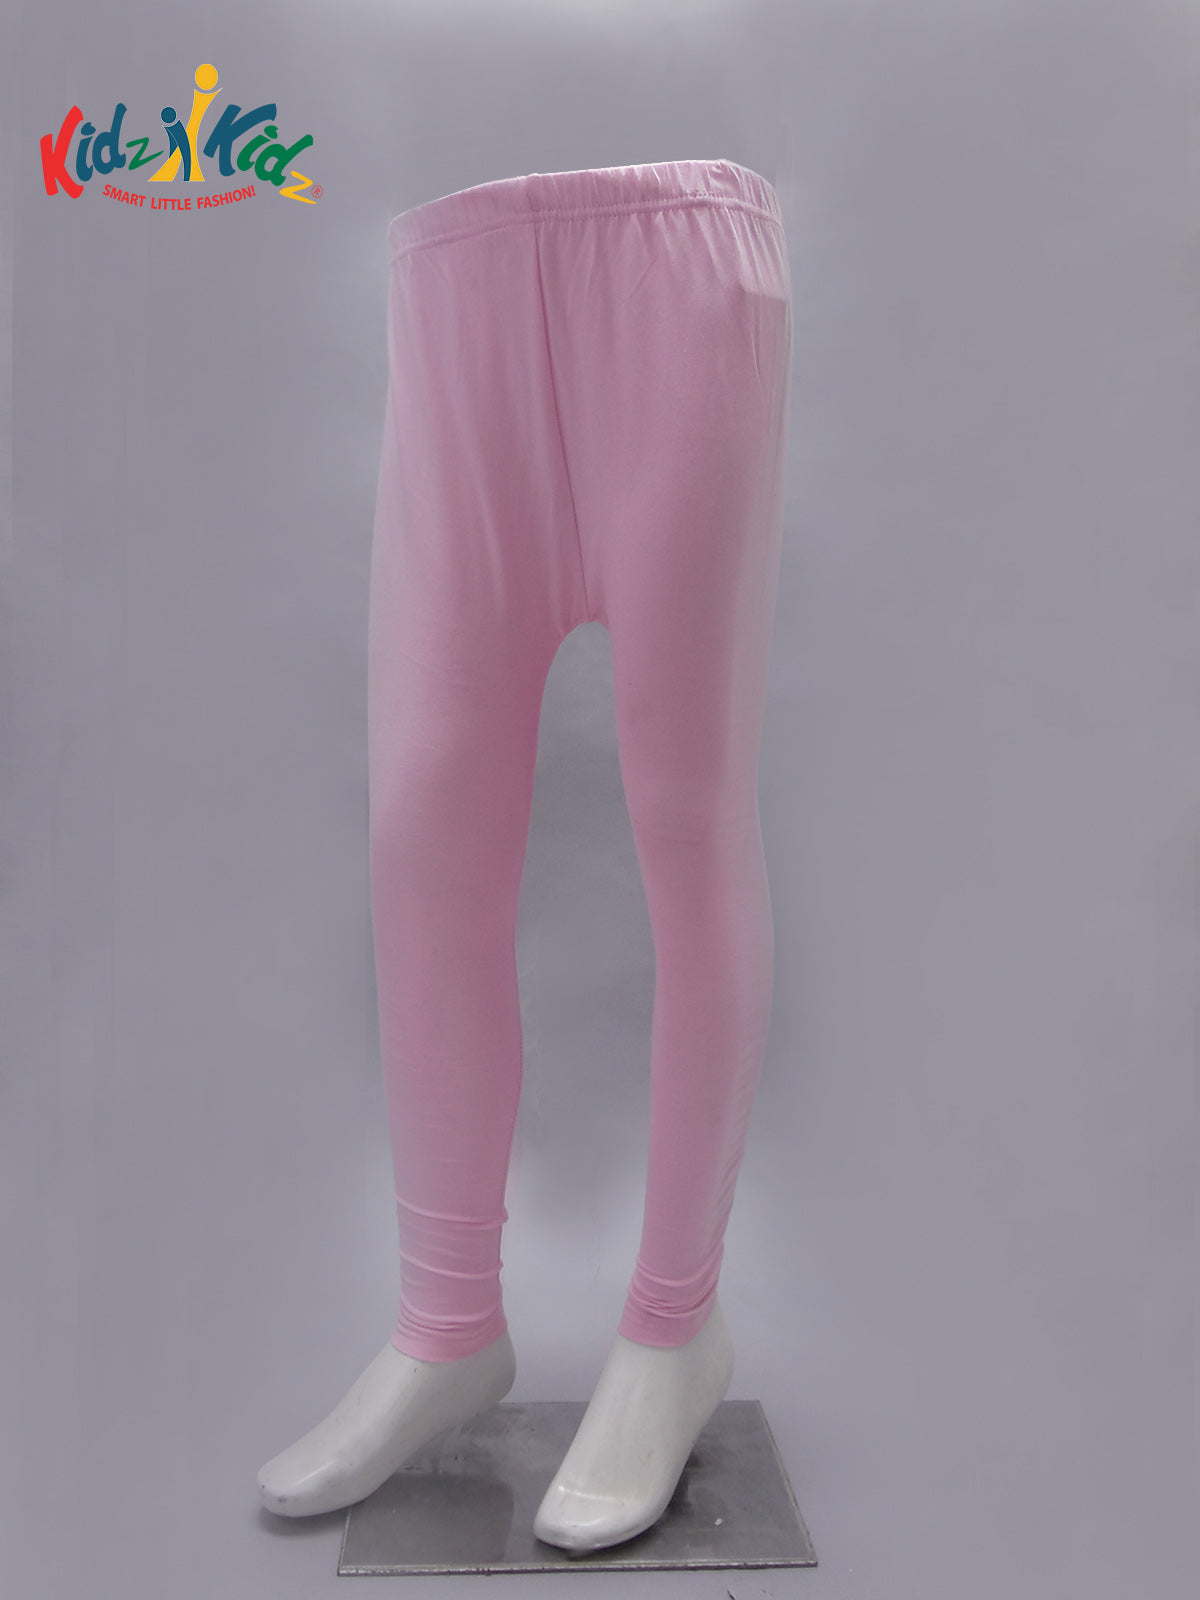 https://cdn.shopify.com/s/files/1/0013/9326/2680/products/AAGPT1007PINK_1.jpg?v=1613626593